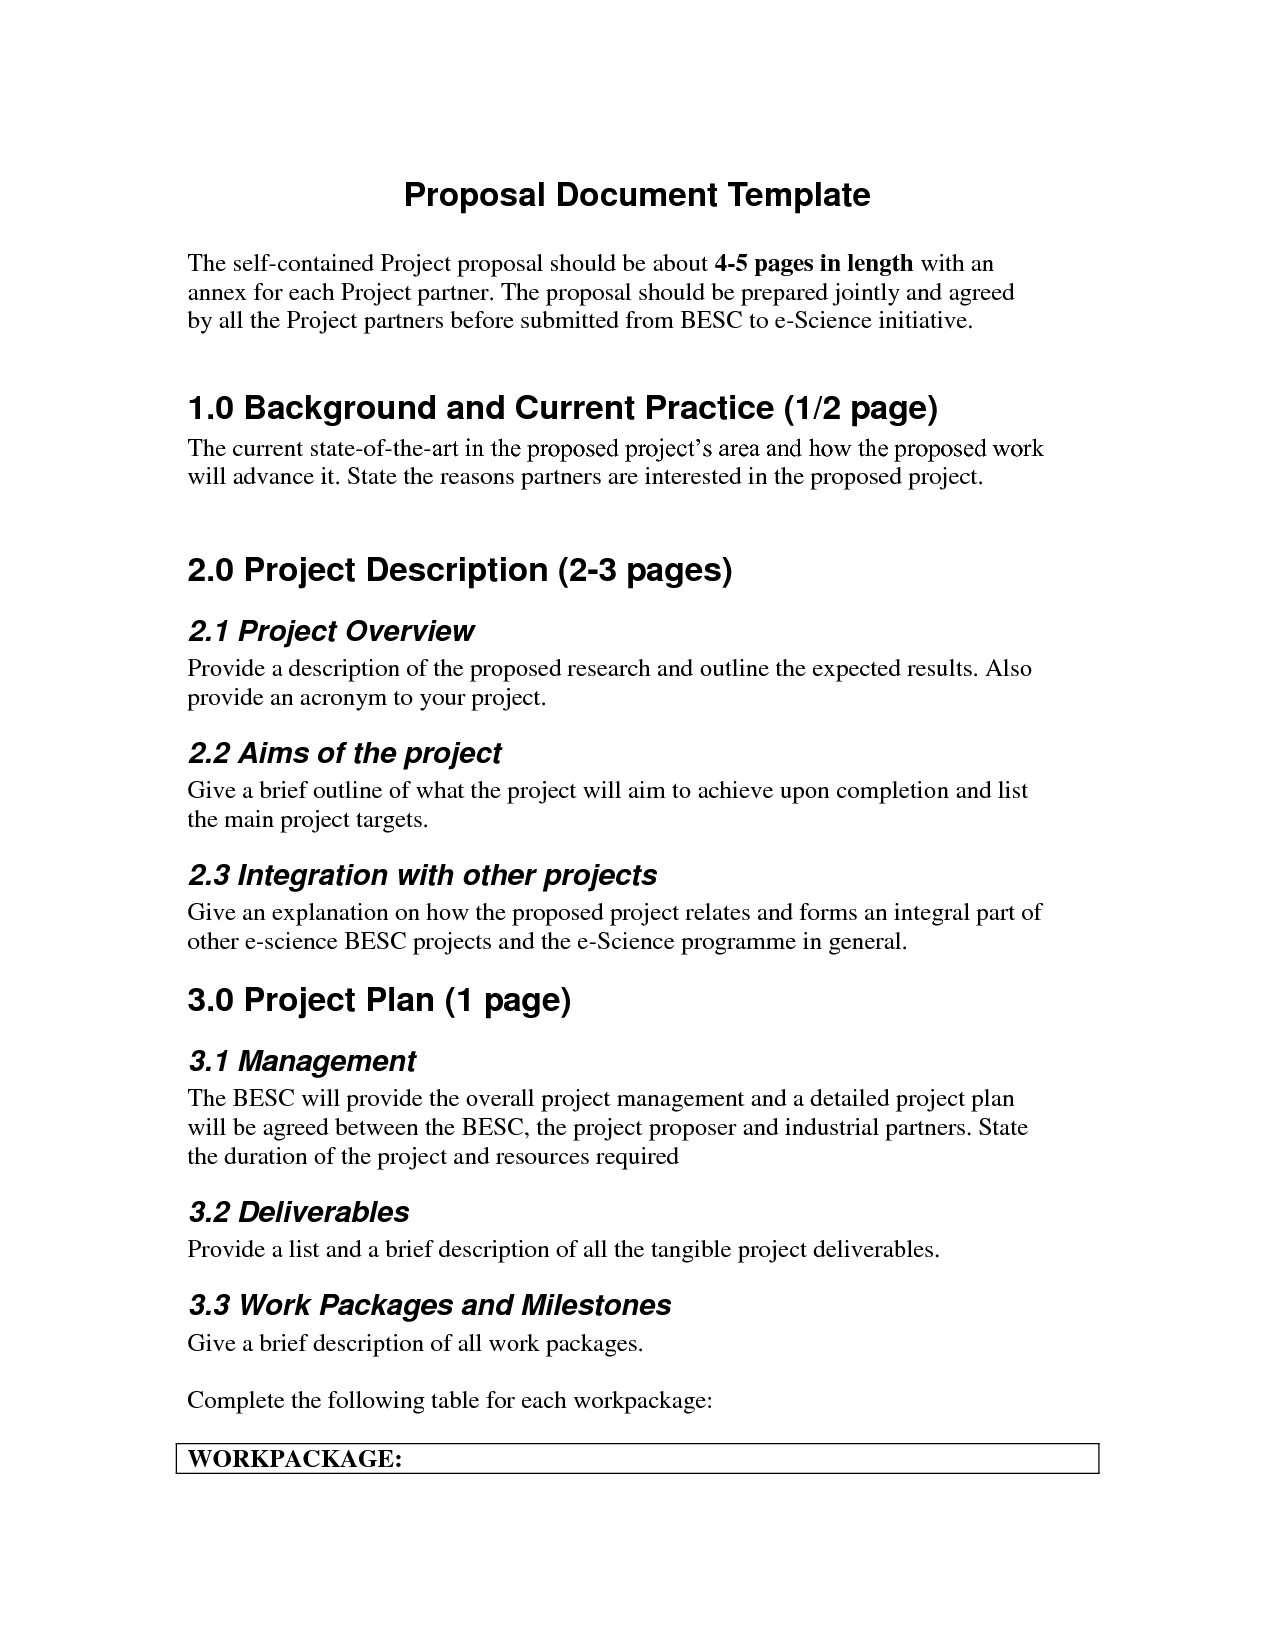 Essay Samples For High School Essay Proposal Template Proposal Essay Topics Before Students Write A  College Research Paper Essay Proposal Sample also Model English Essays Essay Proposal Template Proposal Essay Topics Before Students  Essay Format Example For High School